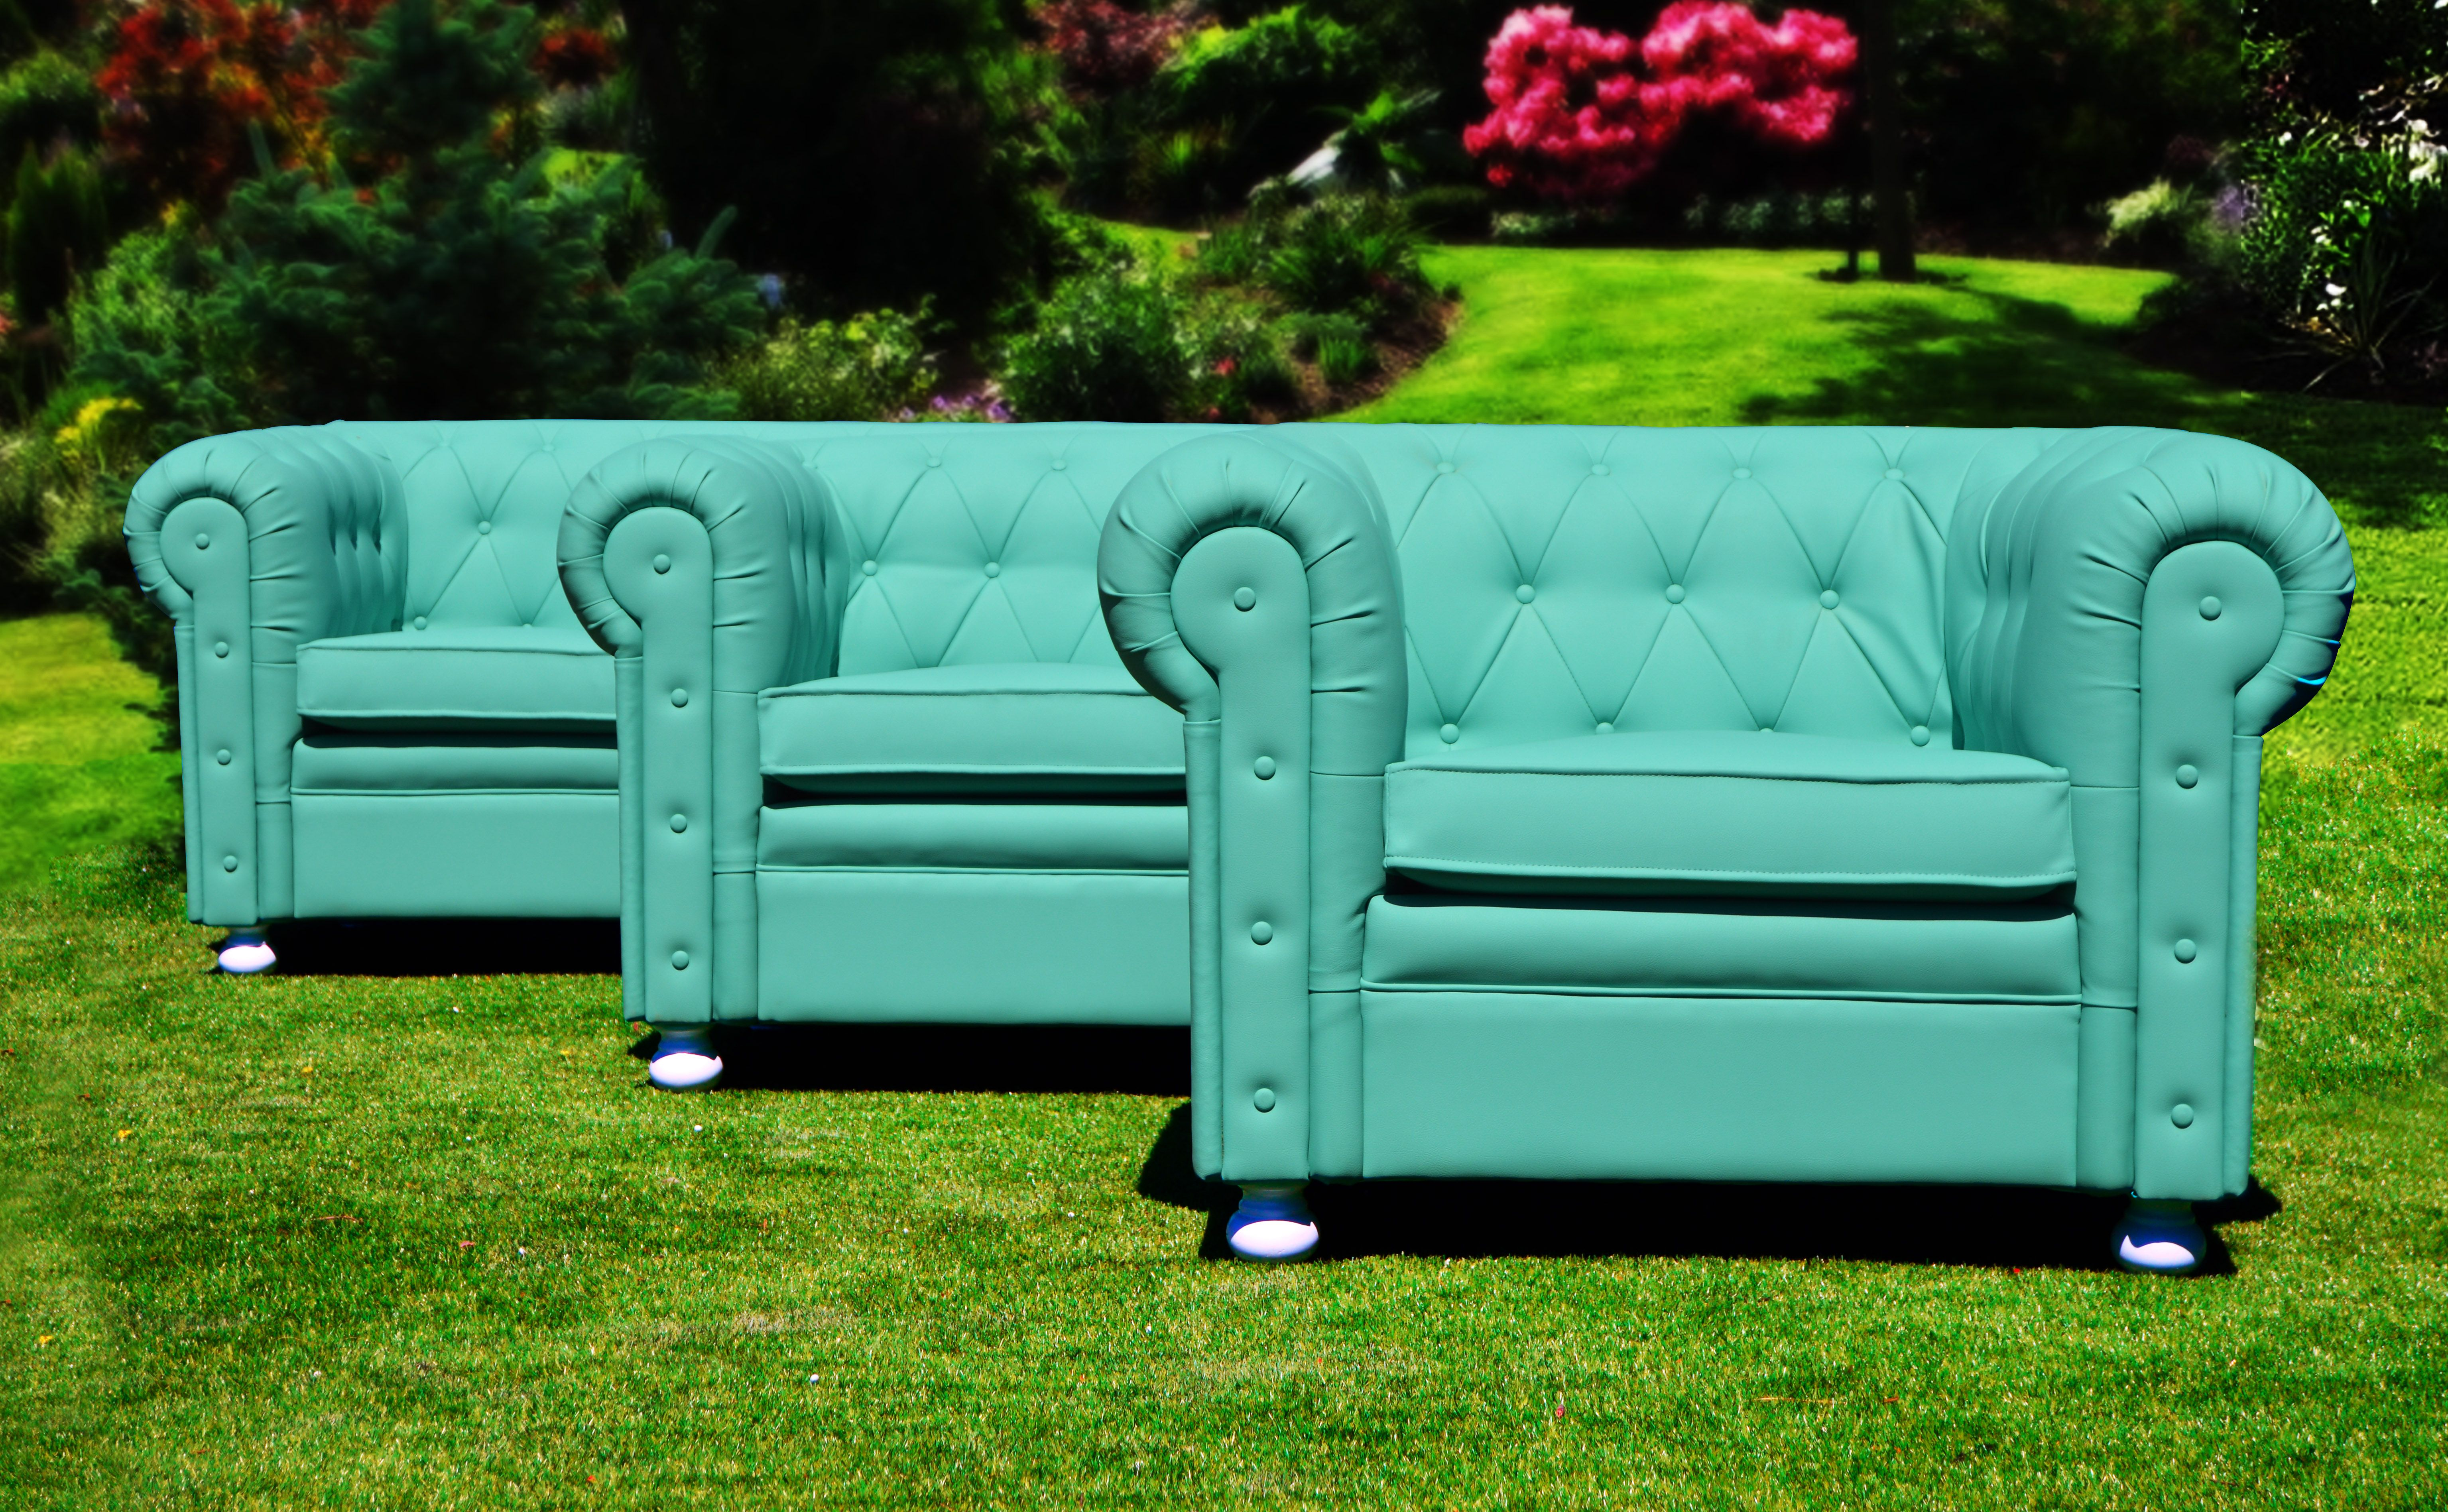 Sof Chester Color Turquesa Chester Couch Turquoise  # Muebles Segunda Mano Noia